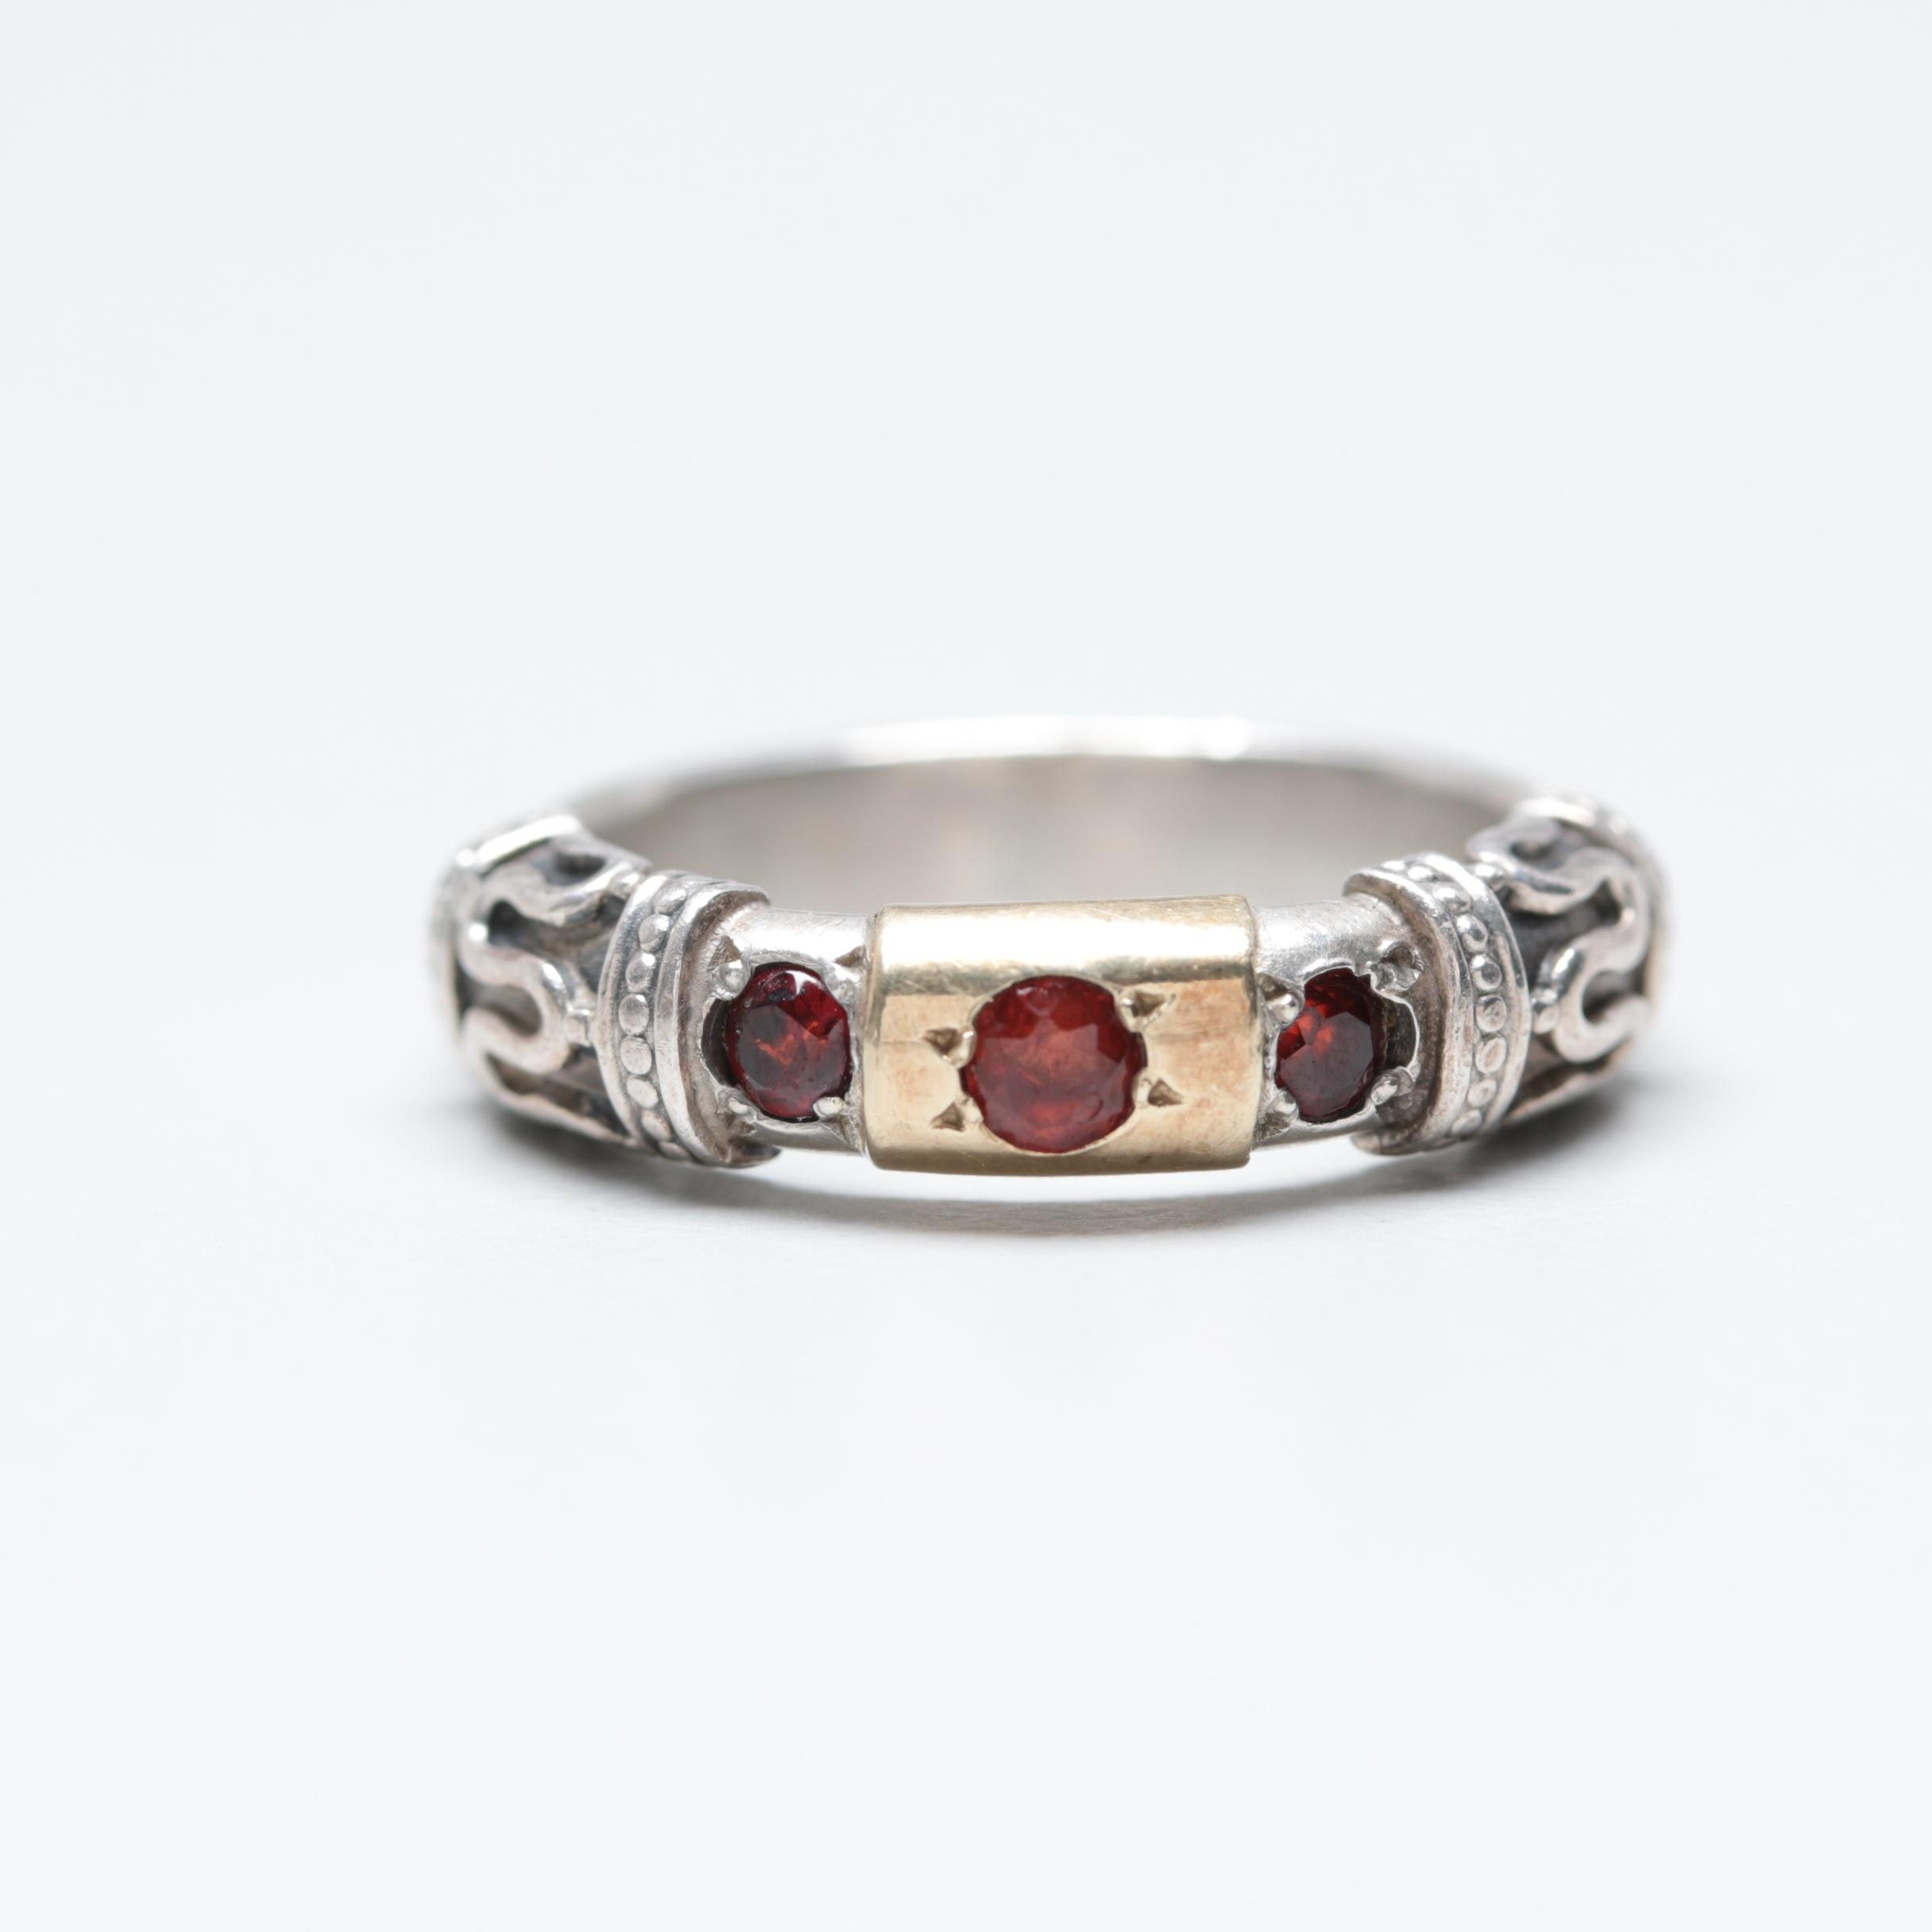 Sterling Silver Garnet Ring with Gold Wash Accent